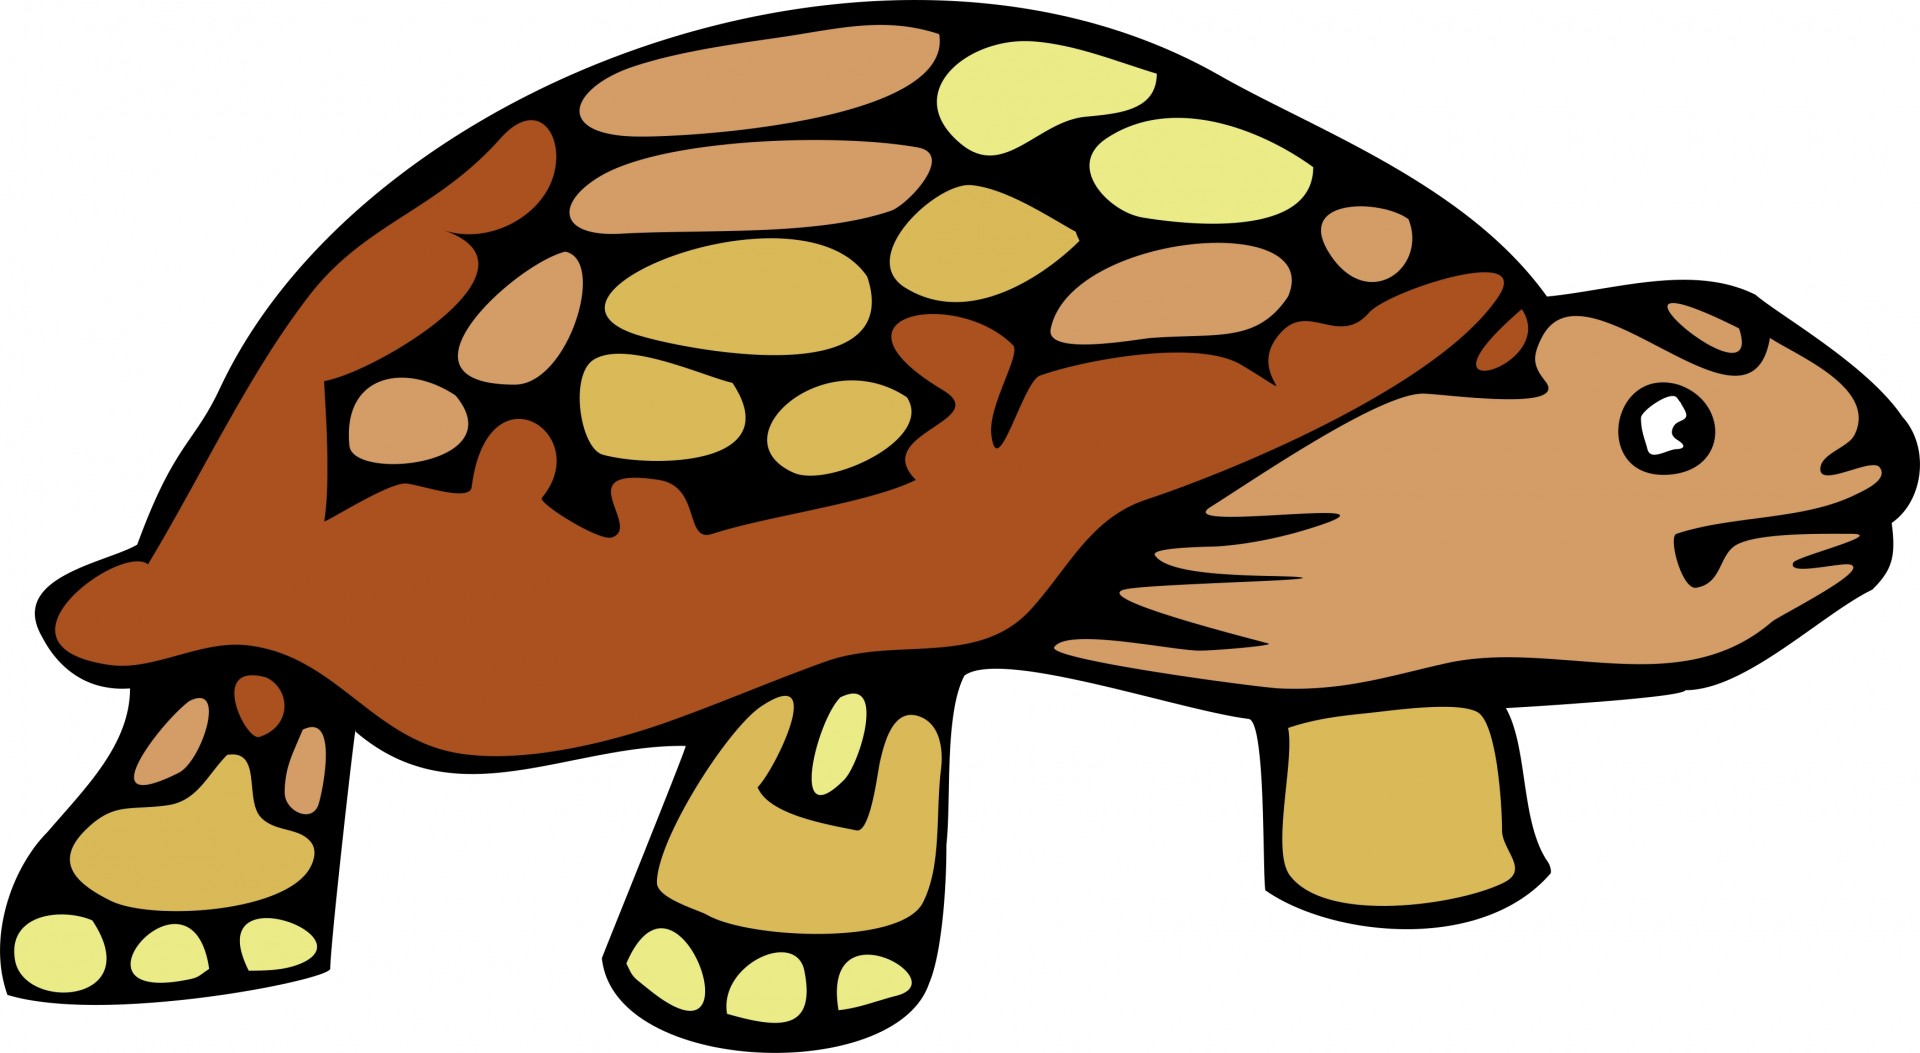 Clipart of tortoise.